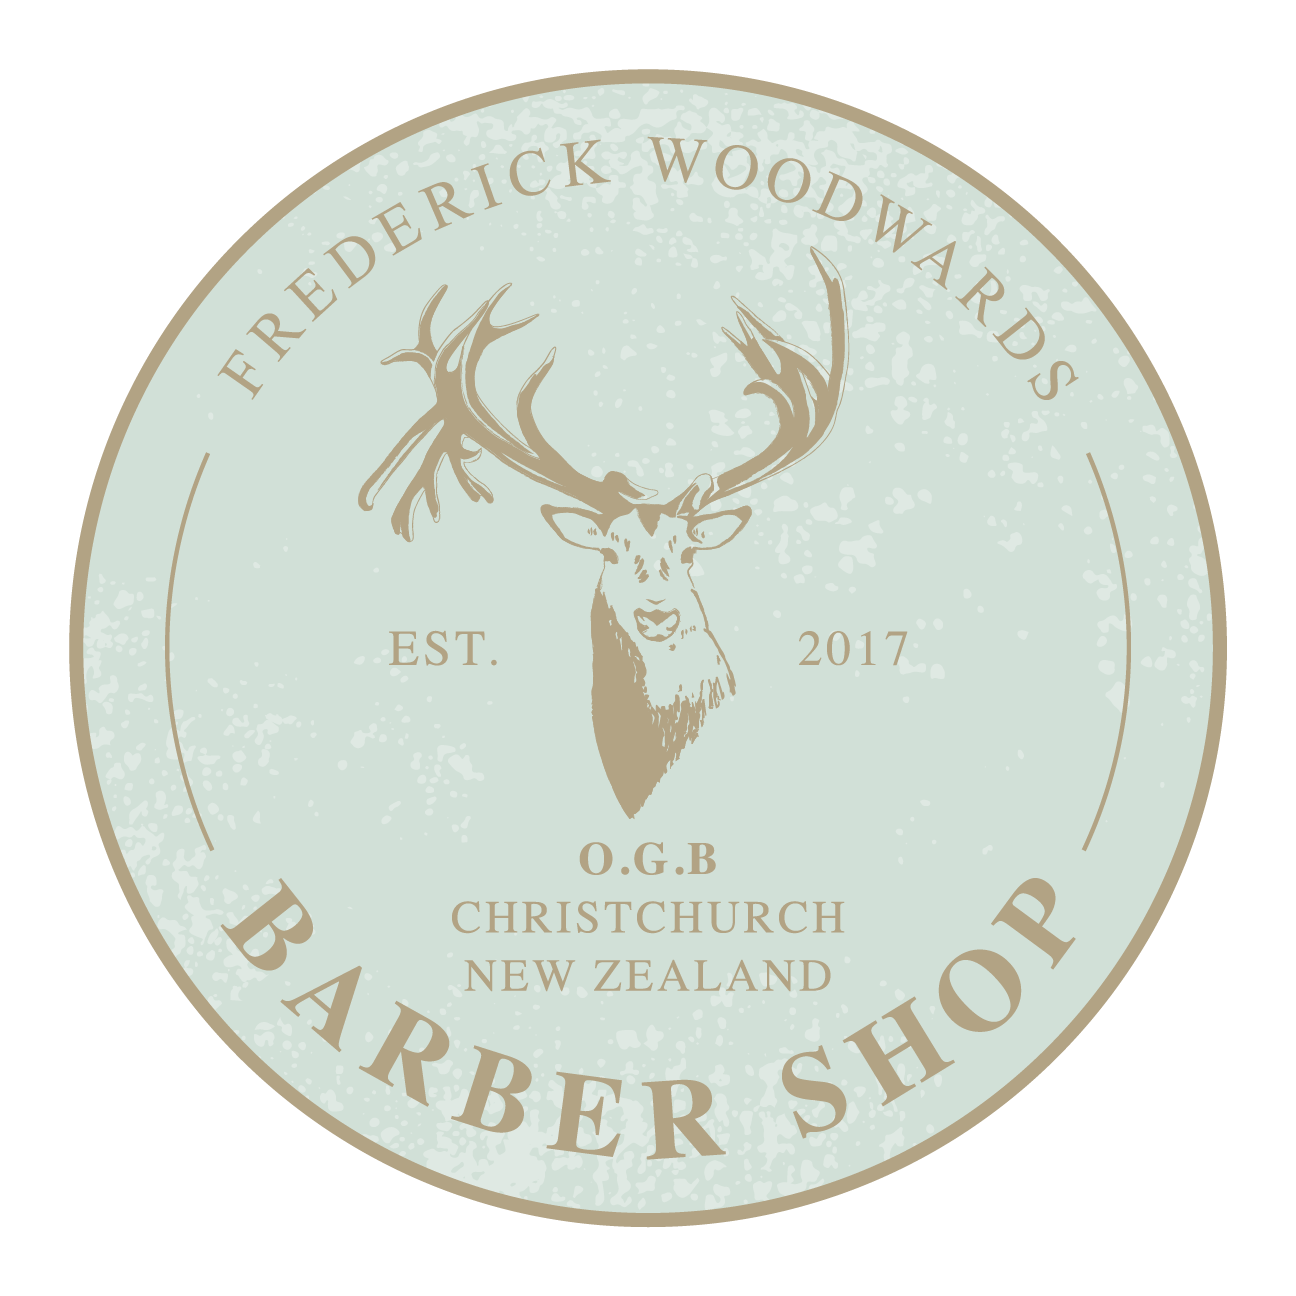 Frederick Woodwards Barber Shop